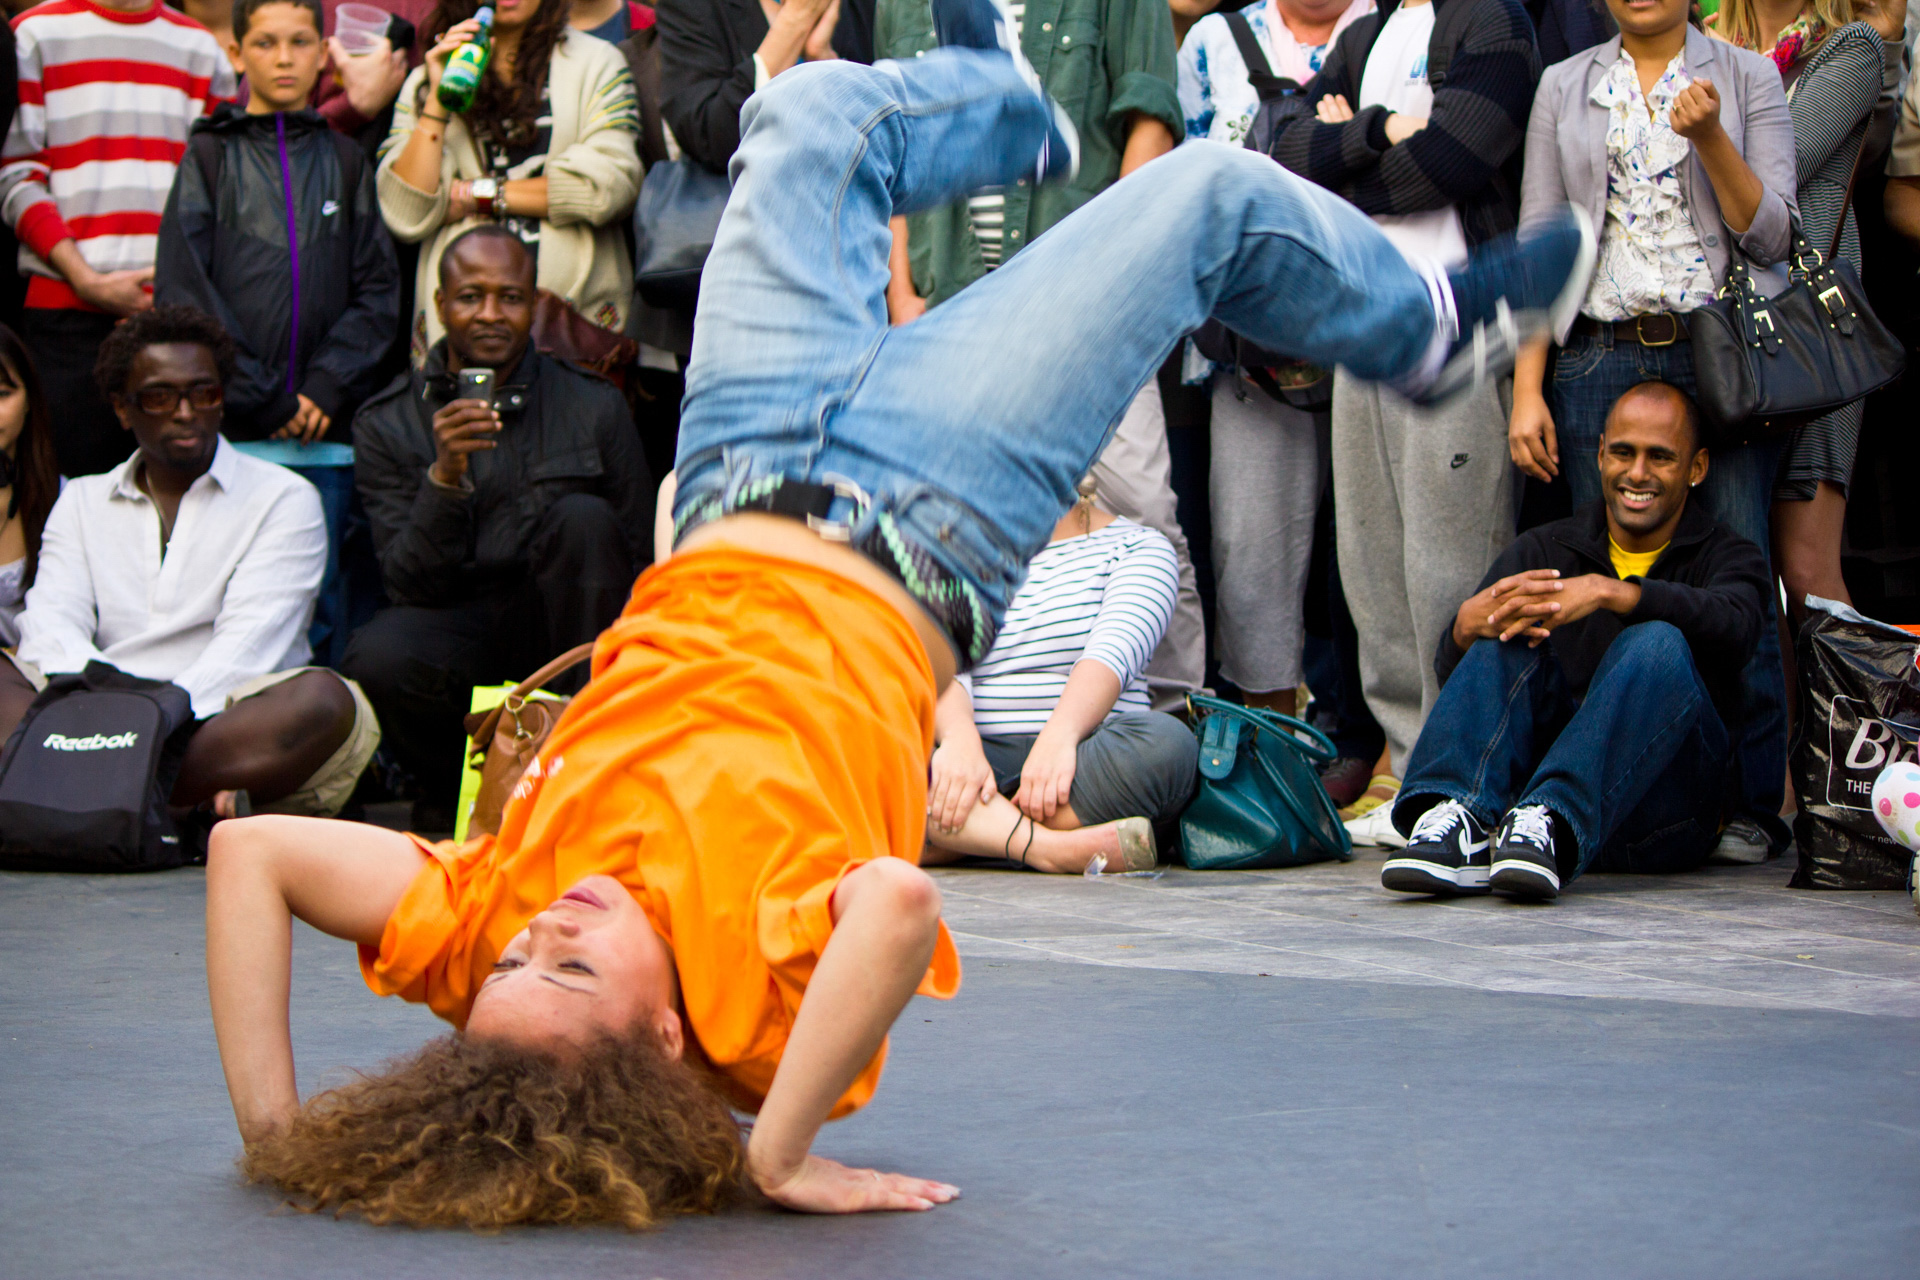 A street dancer with a hint of motion blur